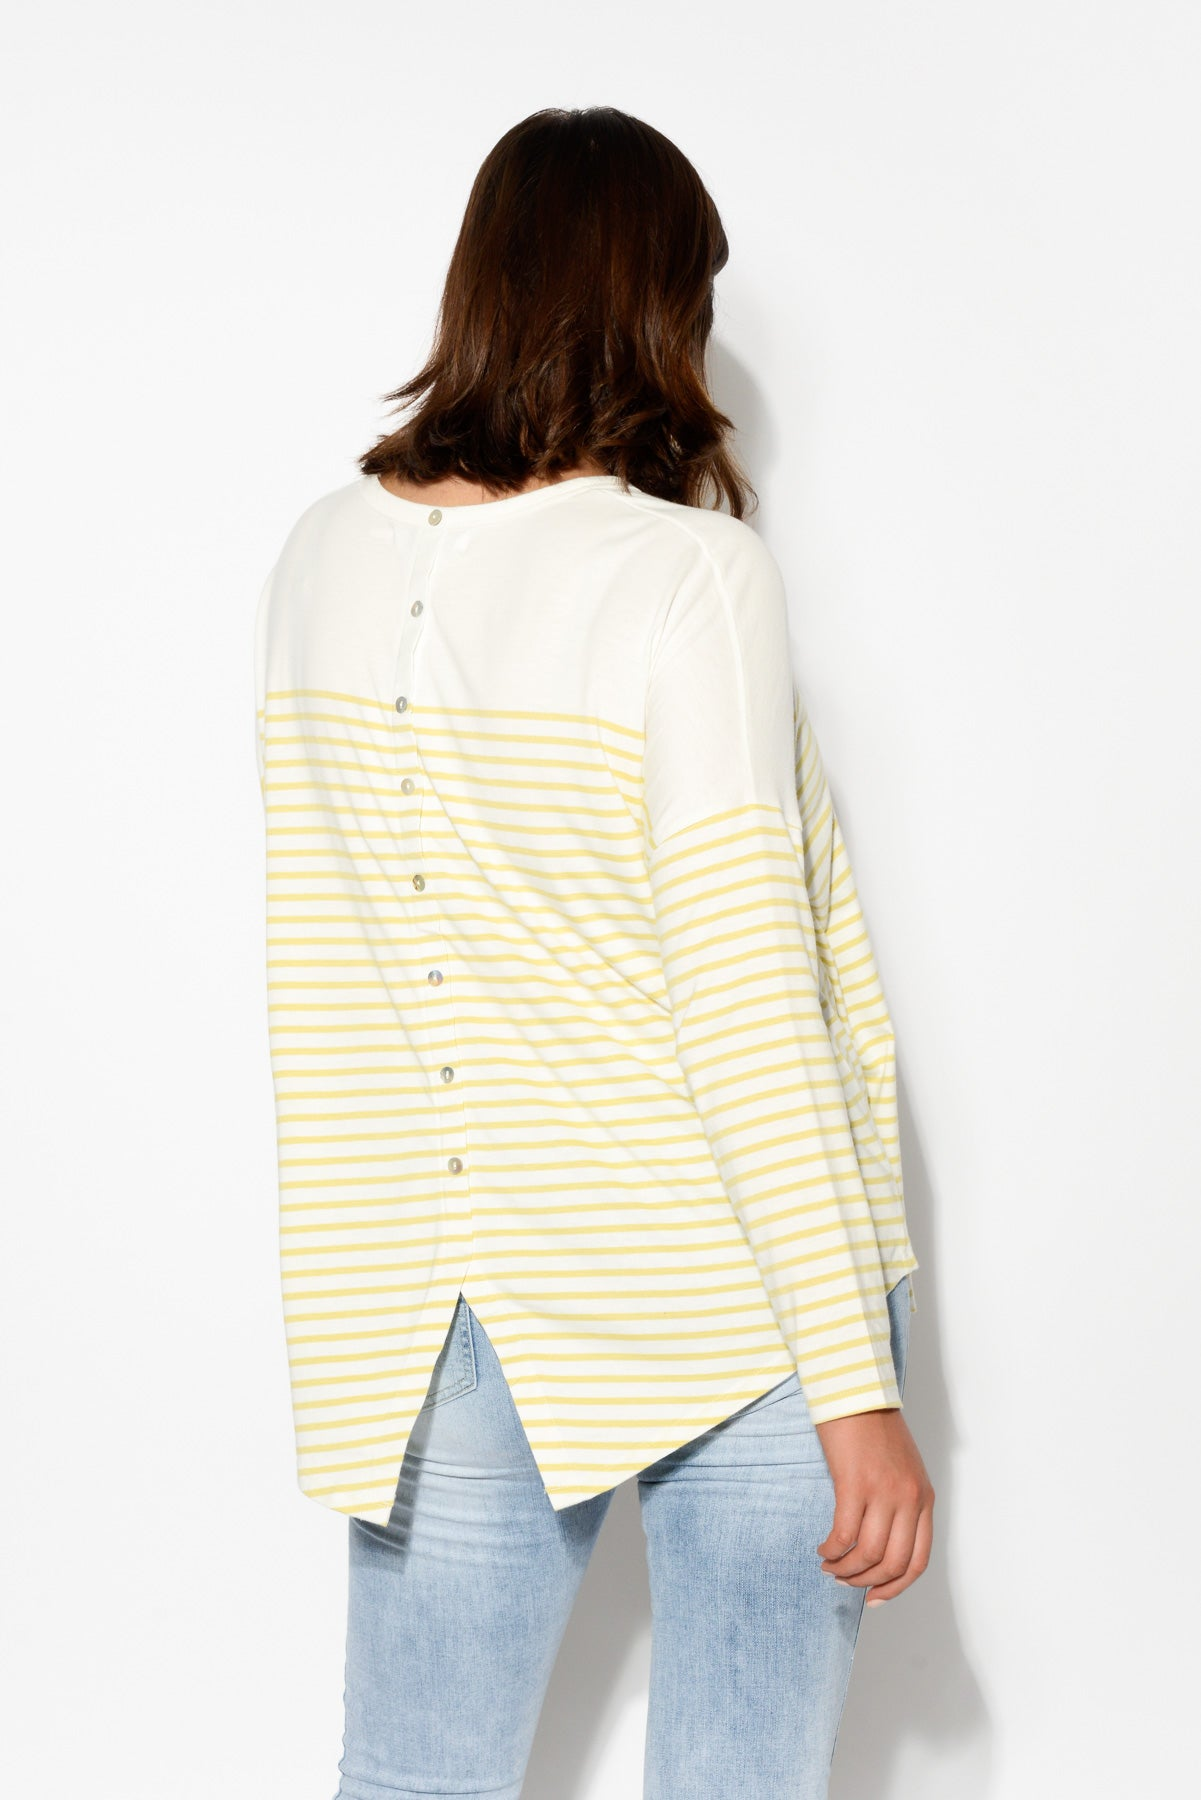 Yellow Stripe Bamboo Cotton Top - Blue Bungalow